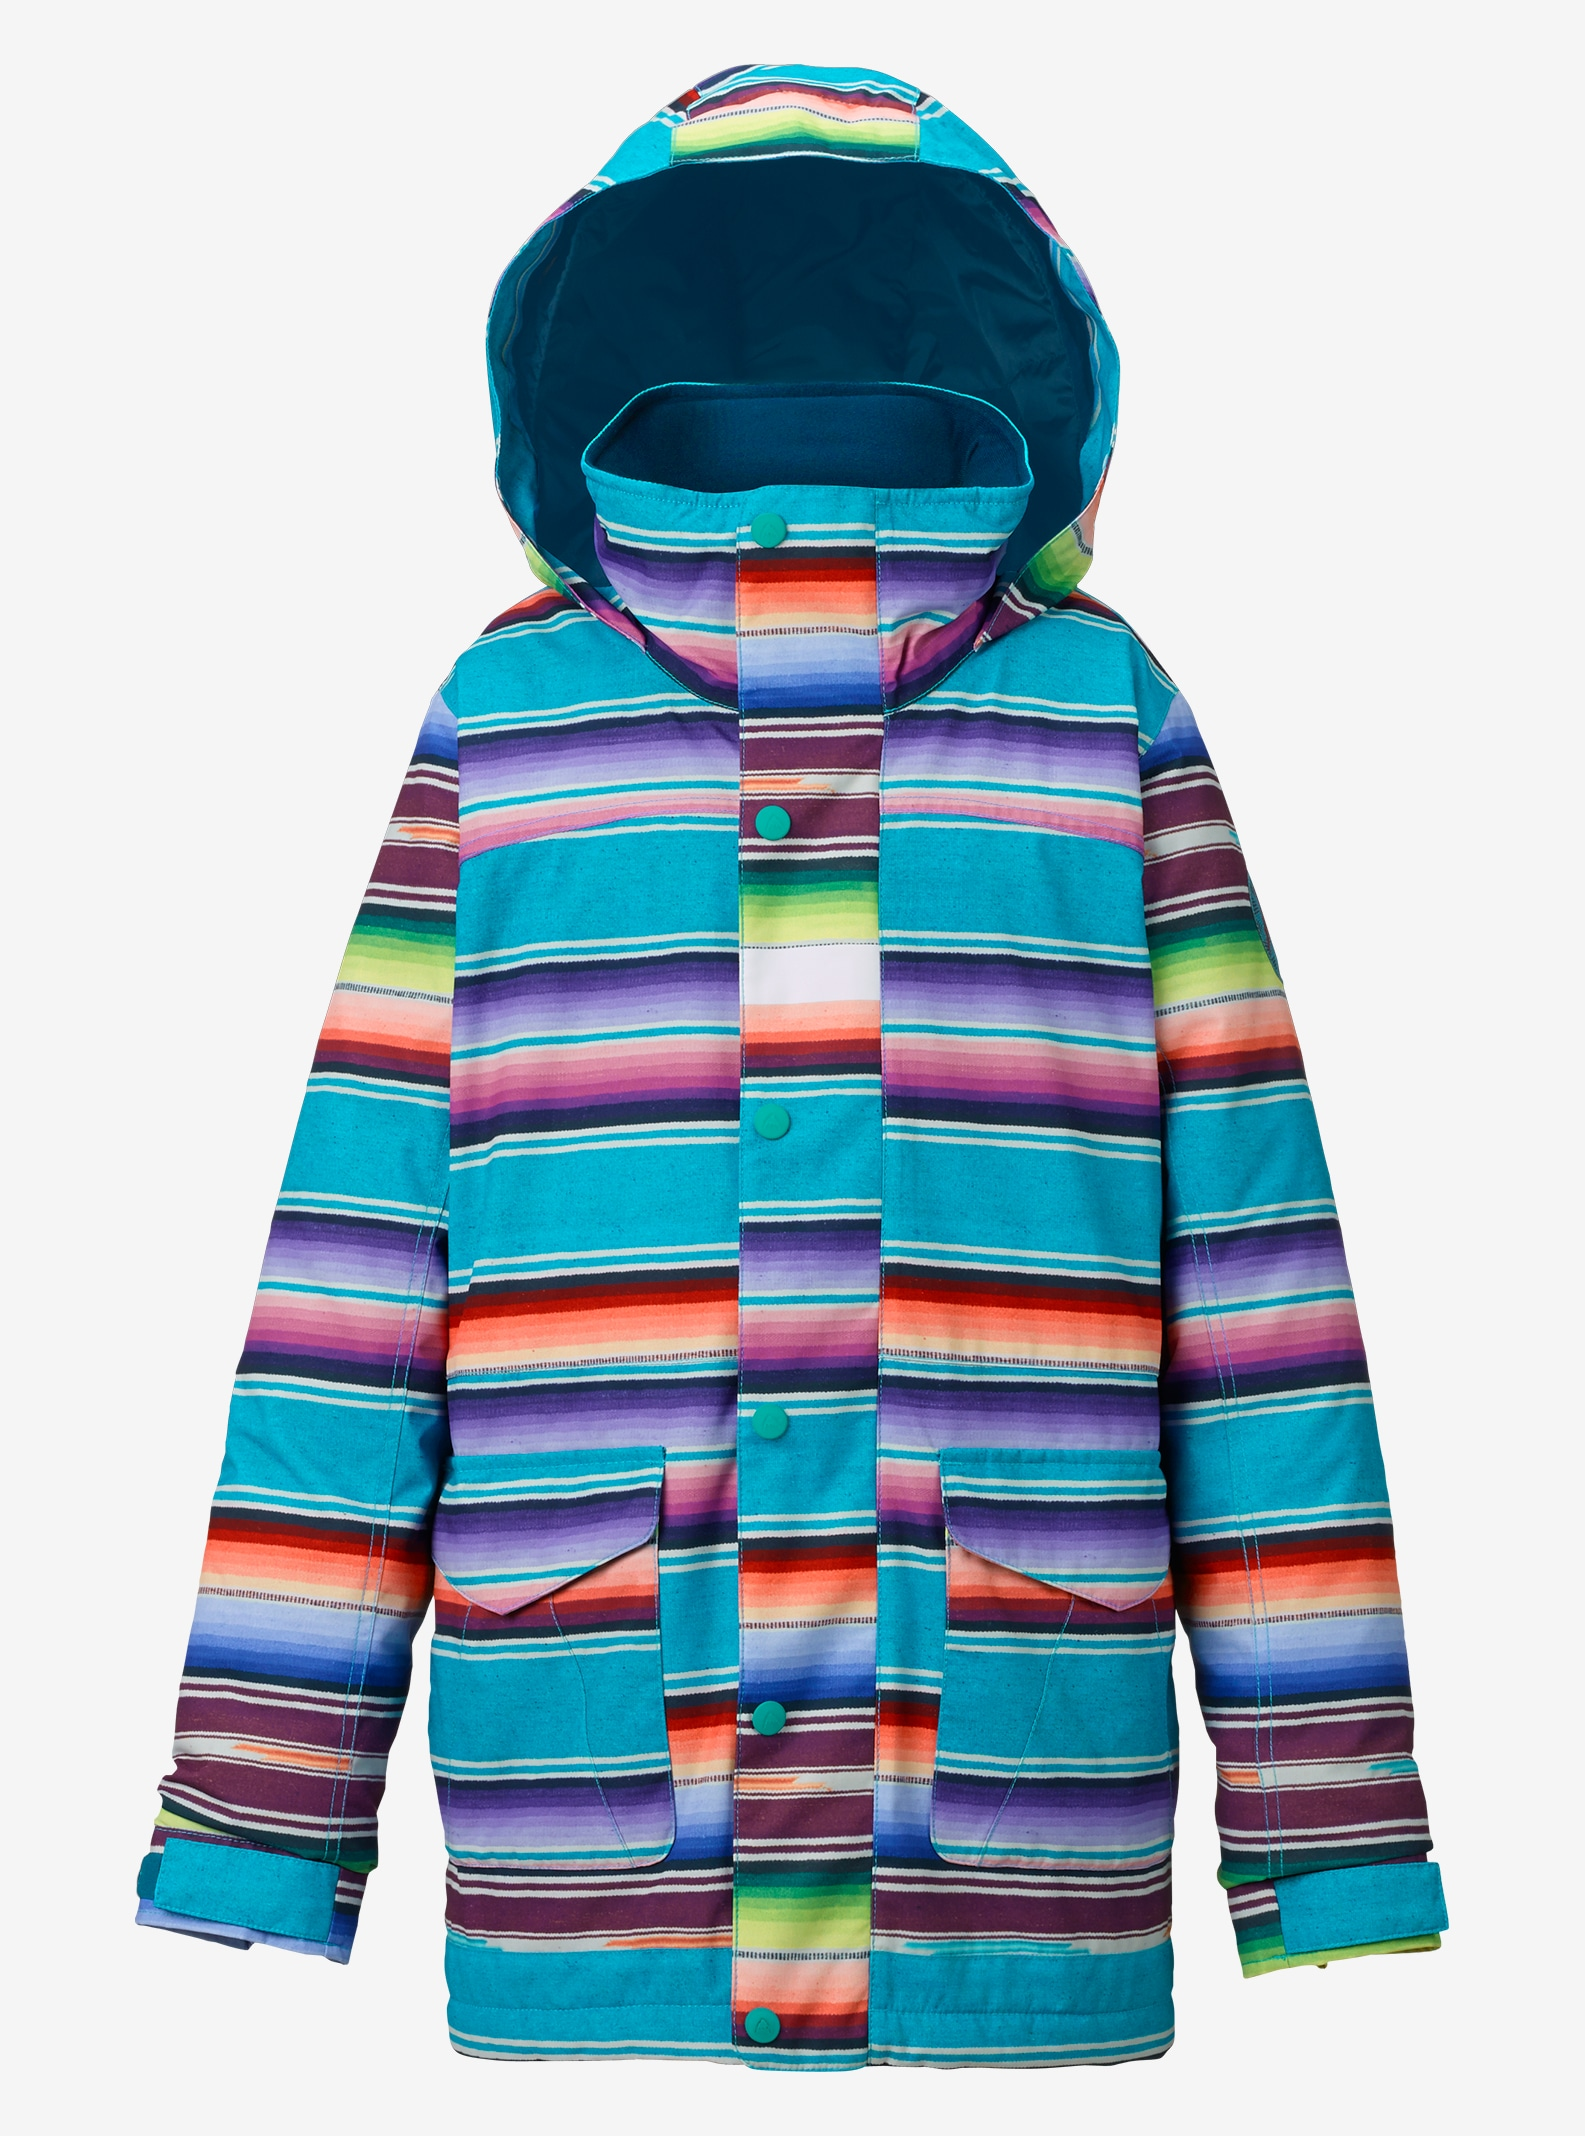 Girls' Burton Elstar Jacket shown in Mijita Stripe